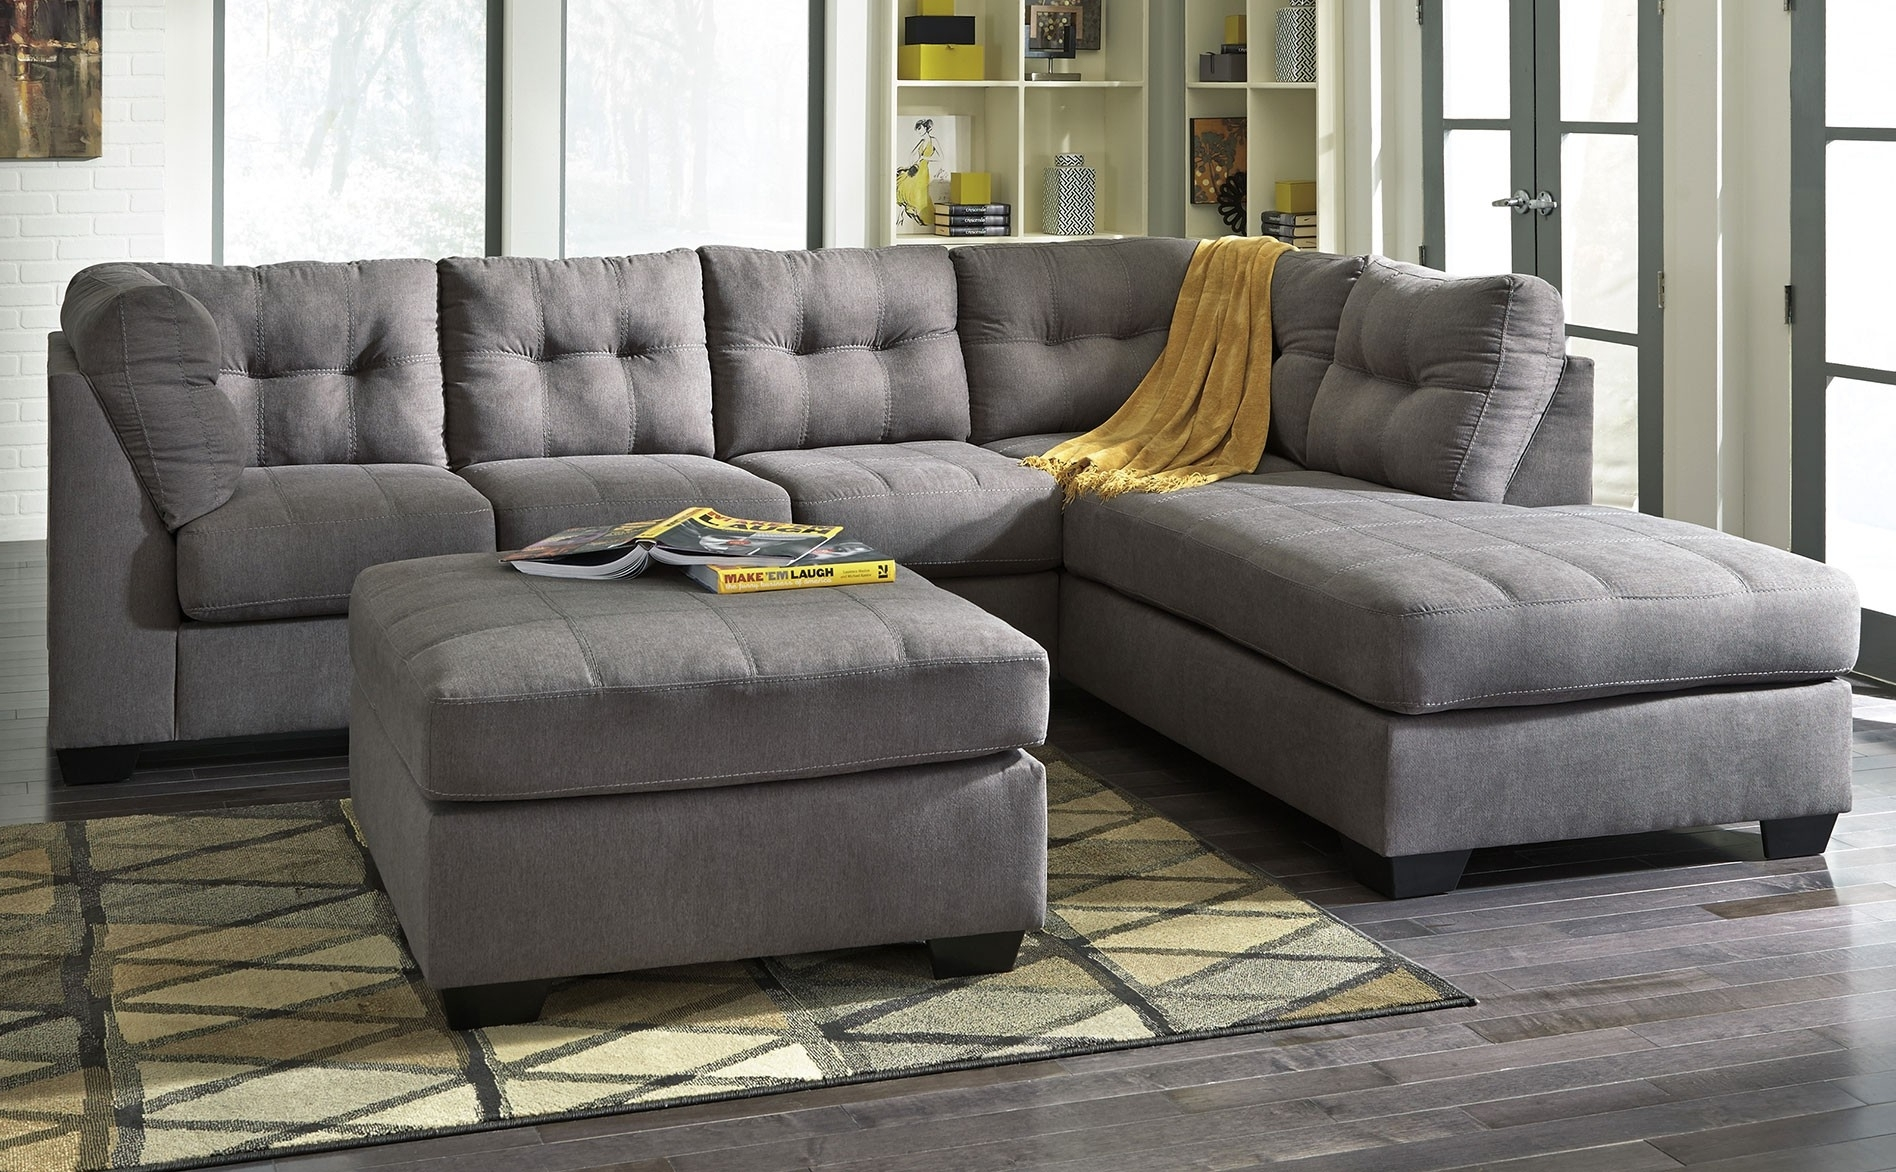 Sectional Sofas Under 500 Within Most Recent Sofa : Leather Couch Under 500 Sectionals Under 400 Room Couch (View 18 of 20)